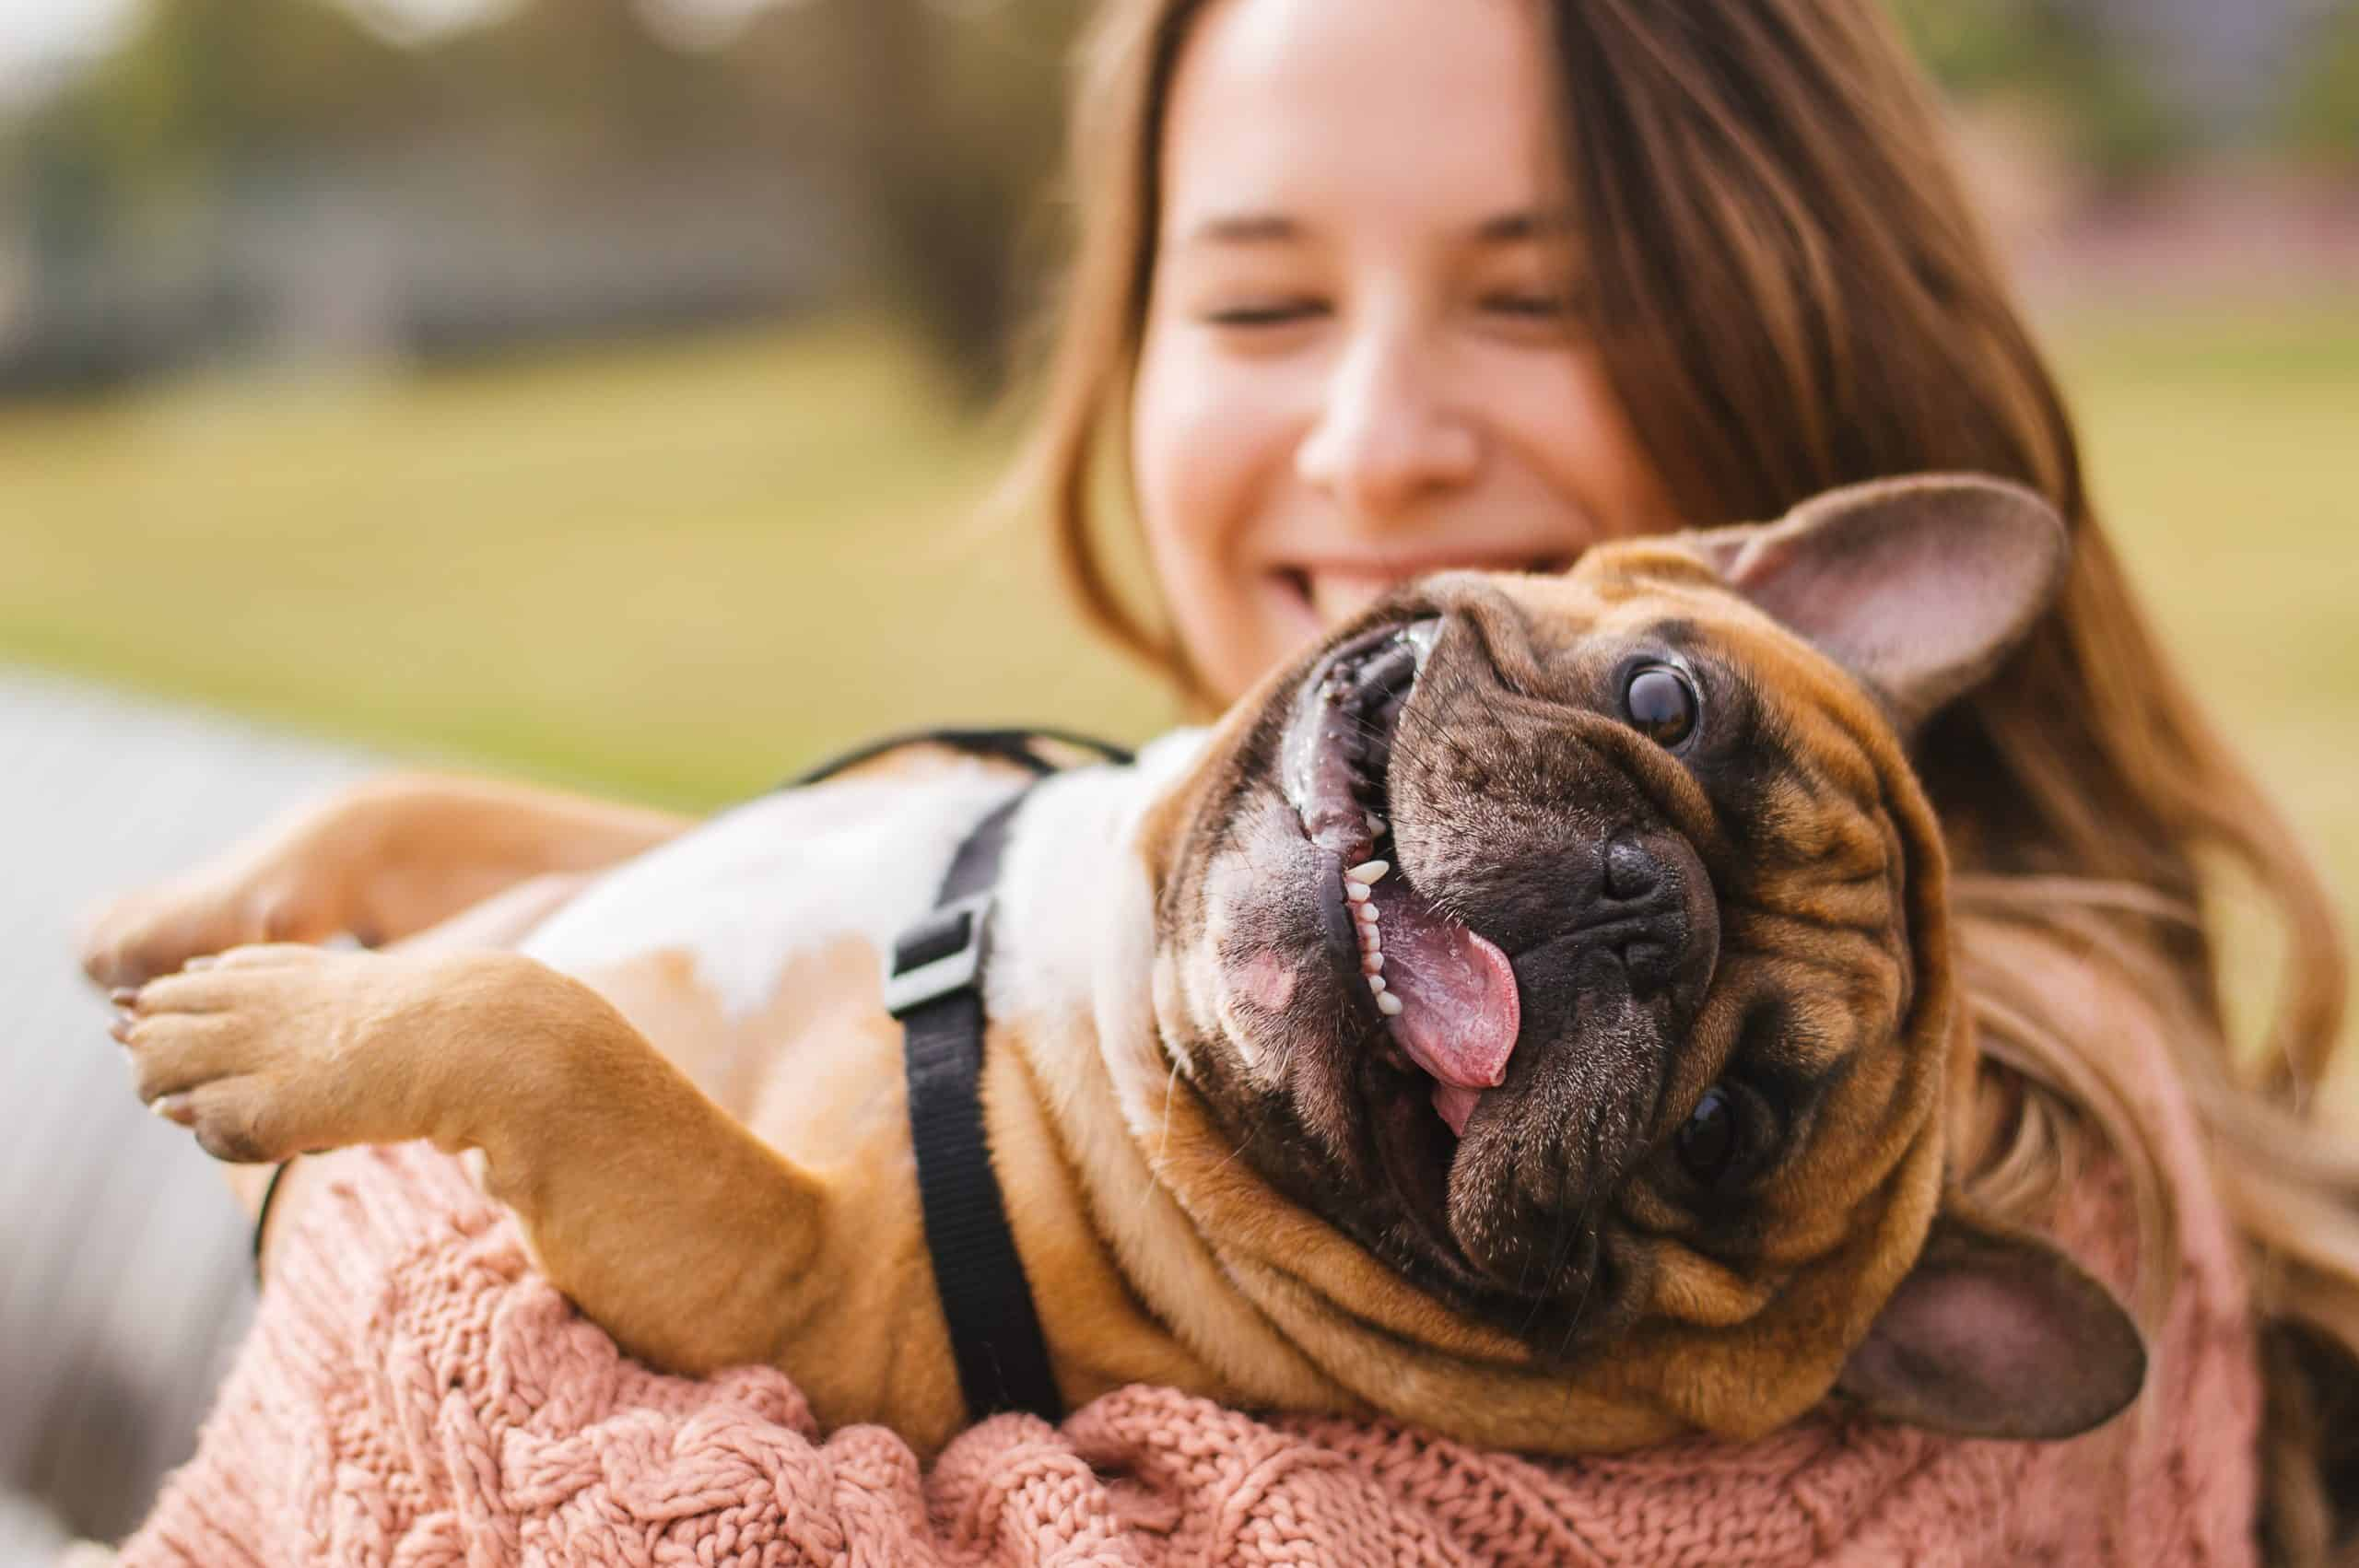 Laughing woman holds French bulldog. As a new dog owner, purchase the supplies that your dog may need for his daily life, such as dog toys, comfortable bedding, a grooming kit, and dog food.